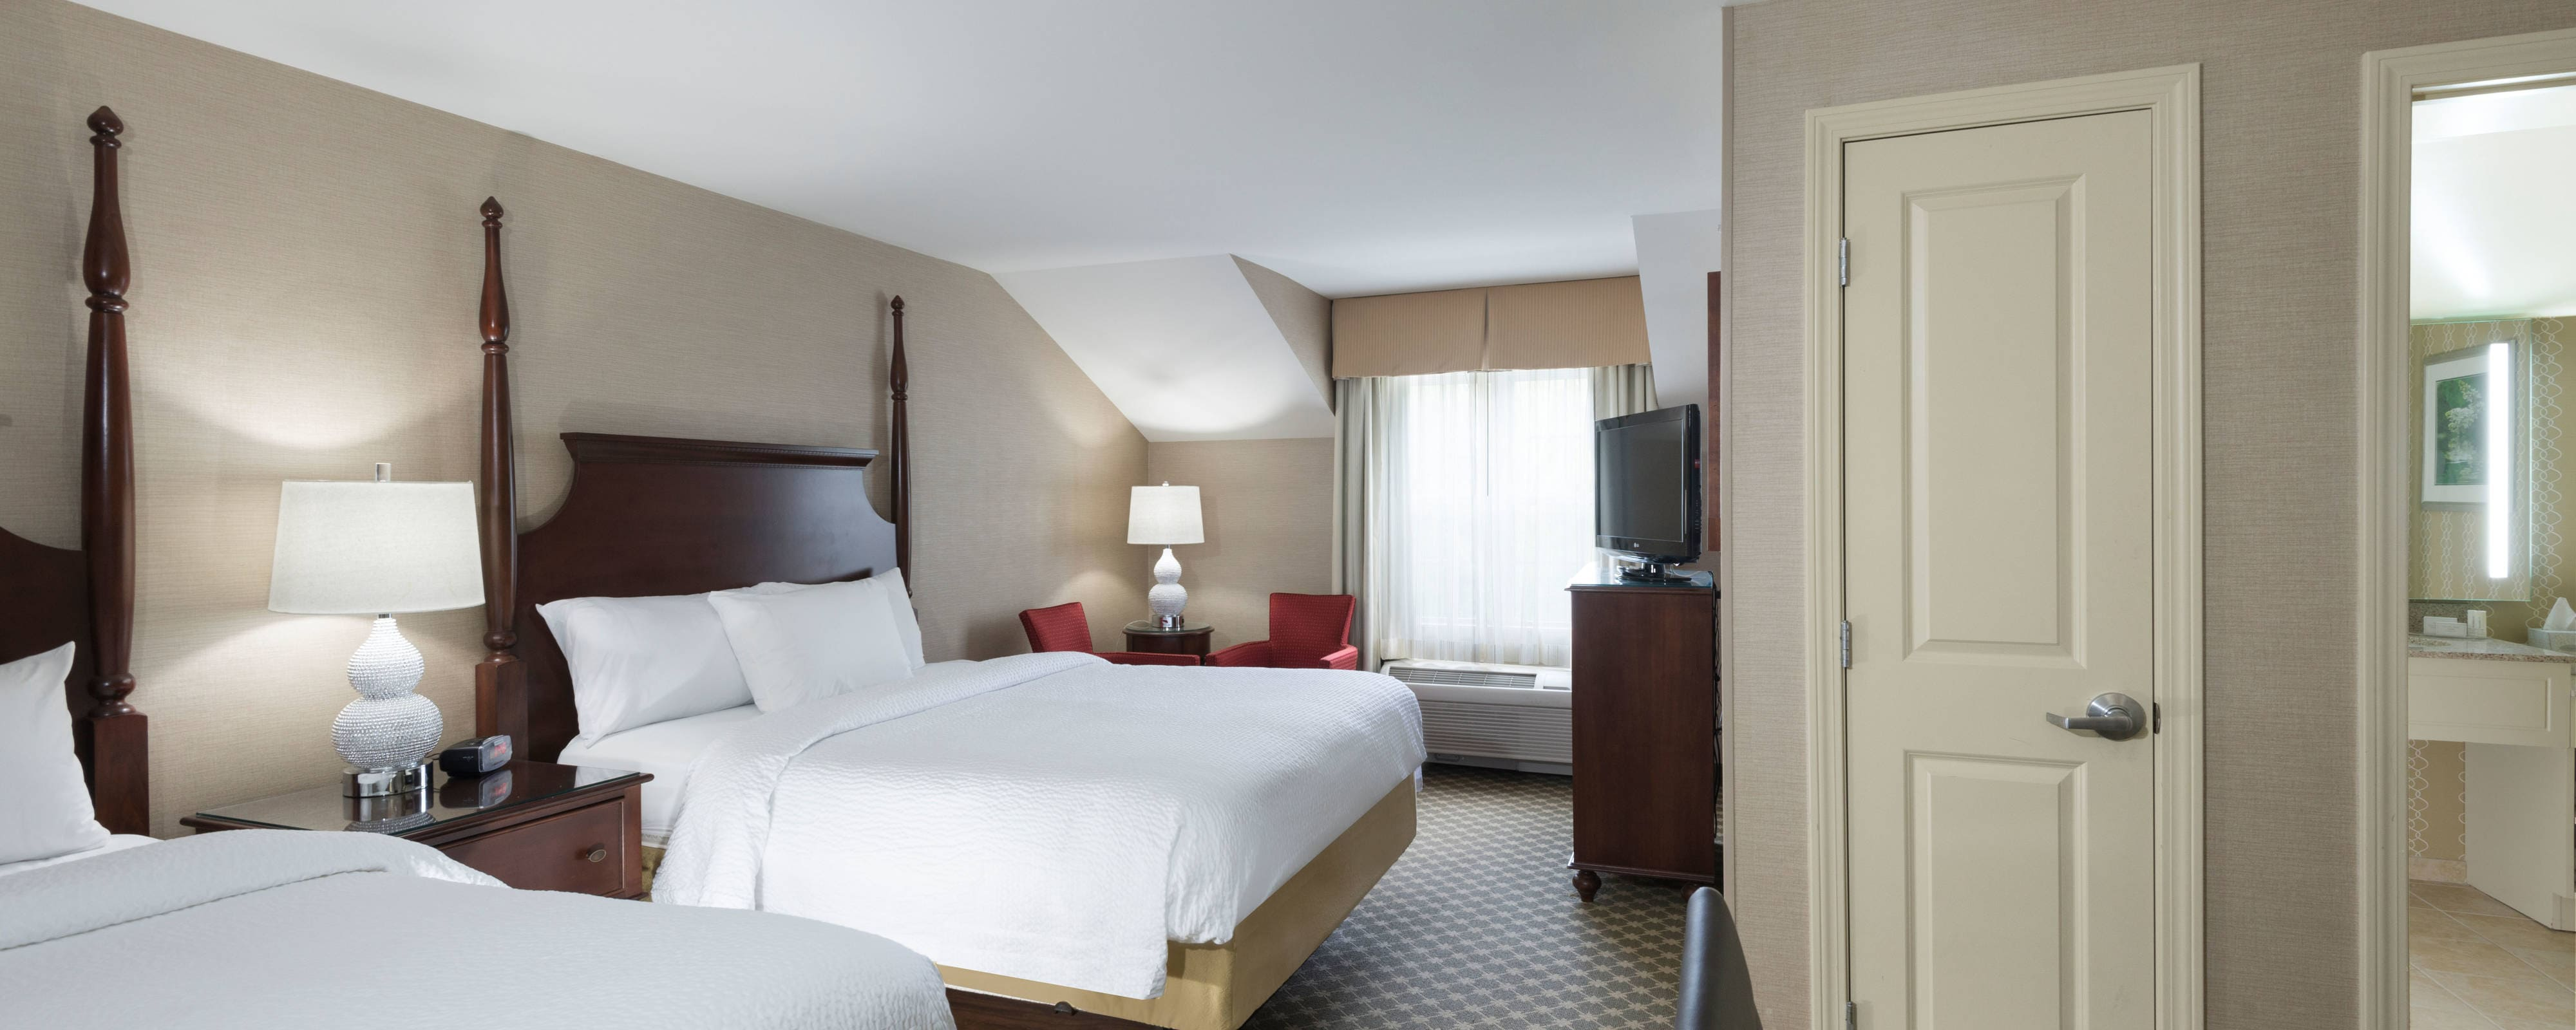 Metrowest Hotels Sudbury Boston